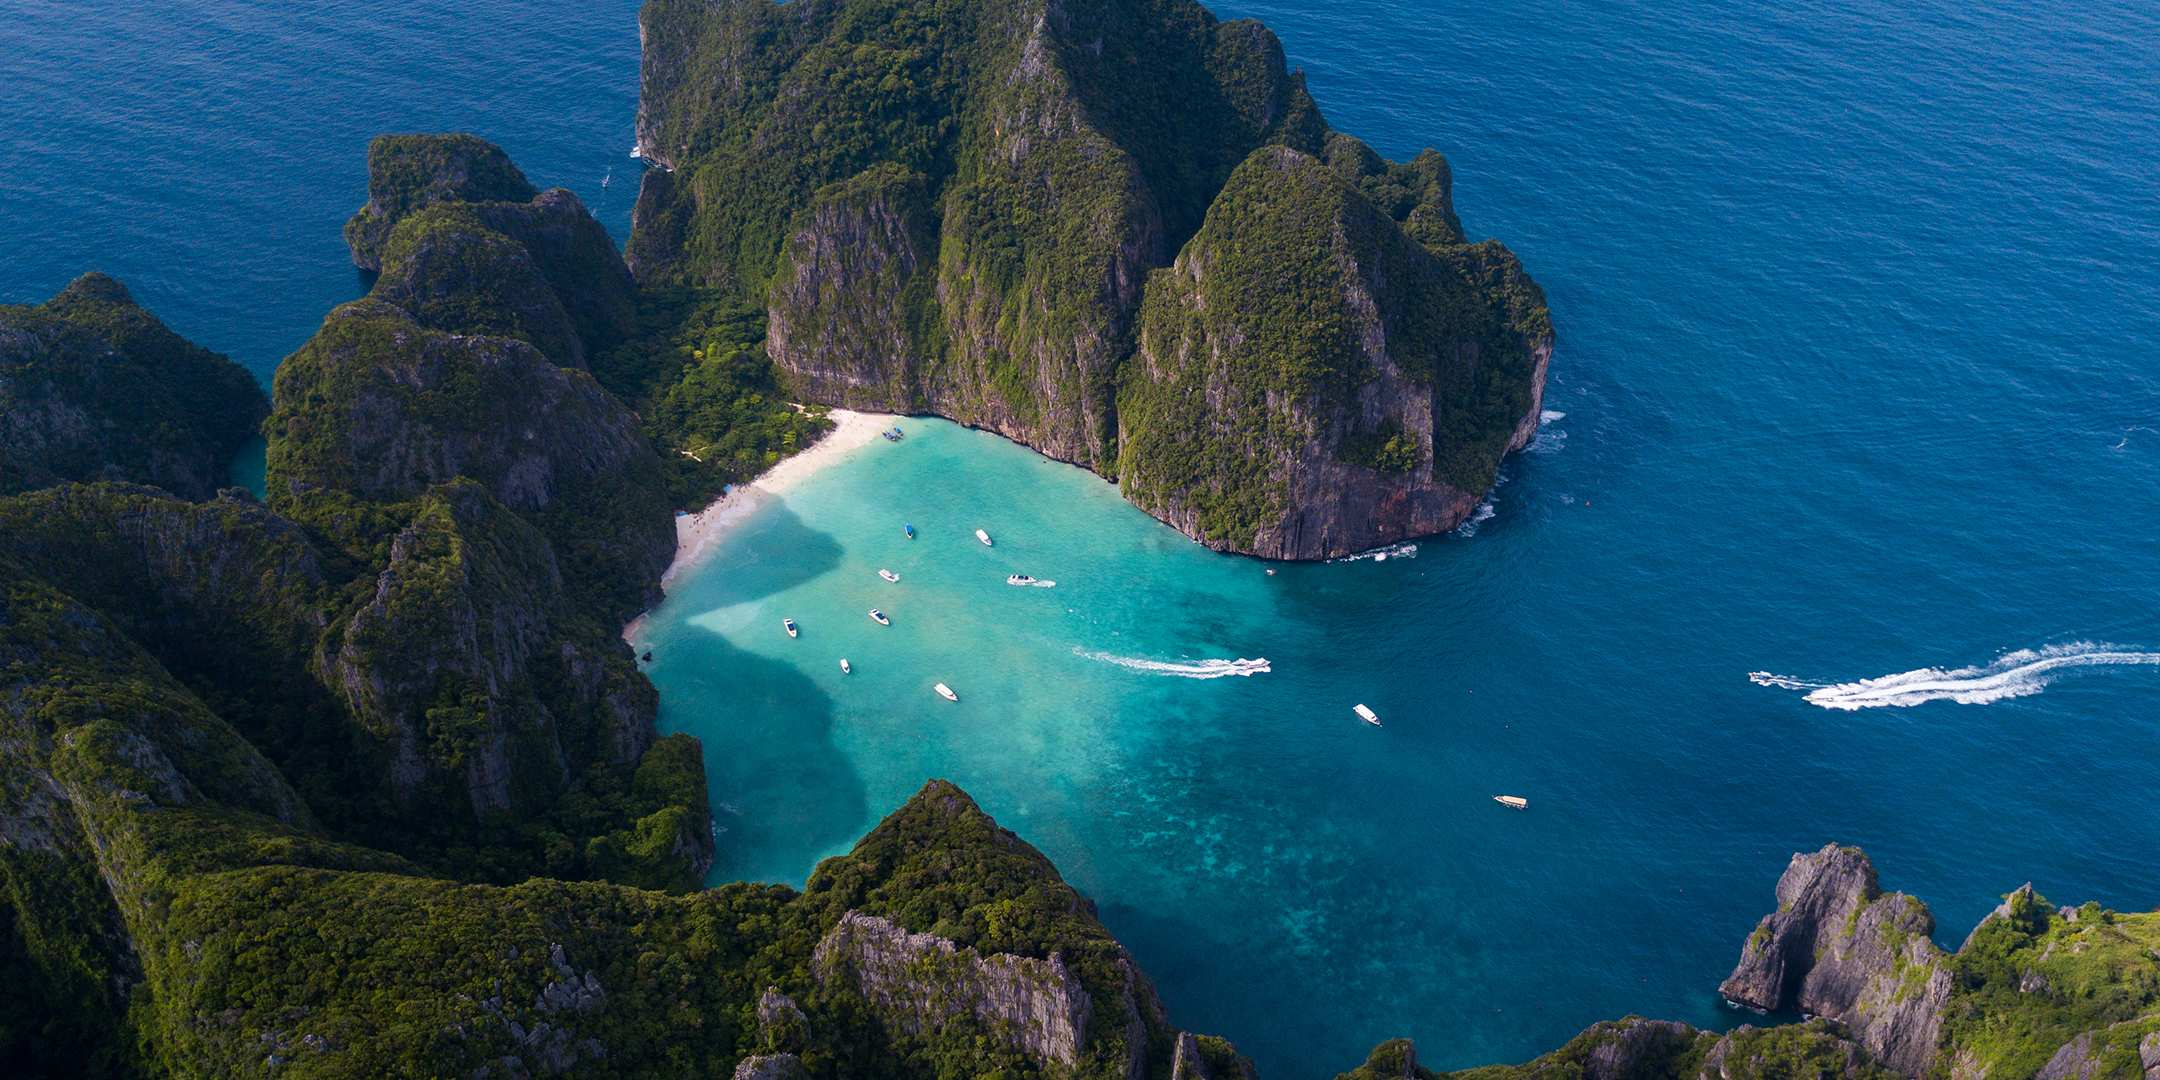 summer places thailand sail moorings vacation spots vacations sailing yacht featured discover